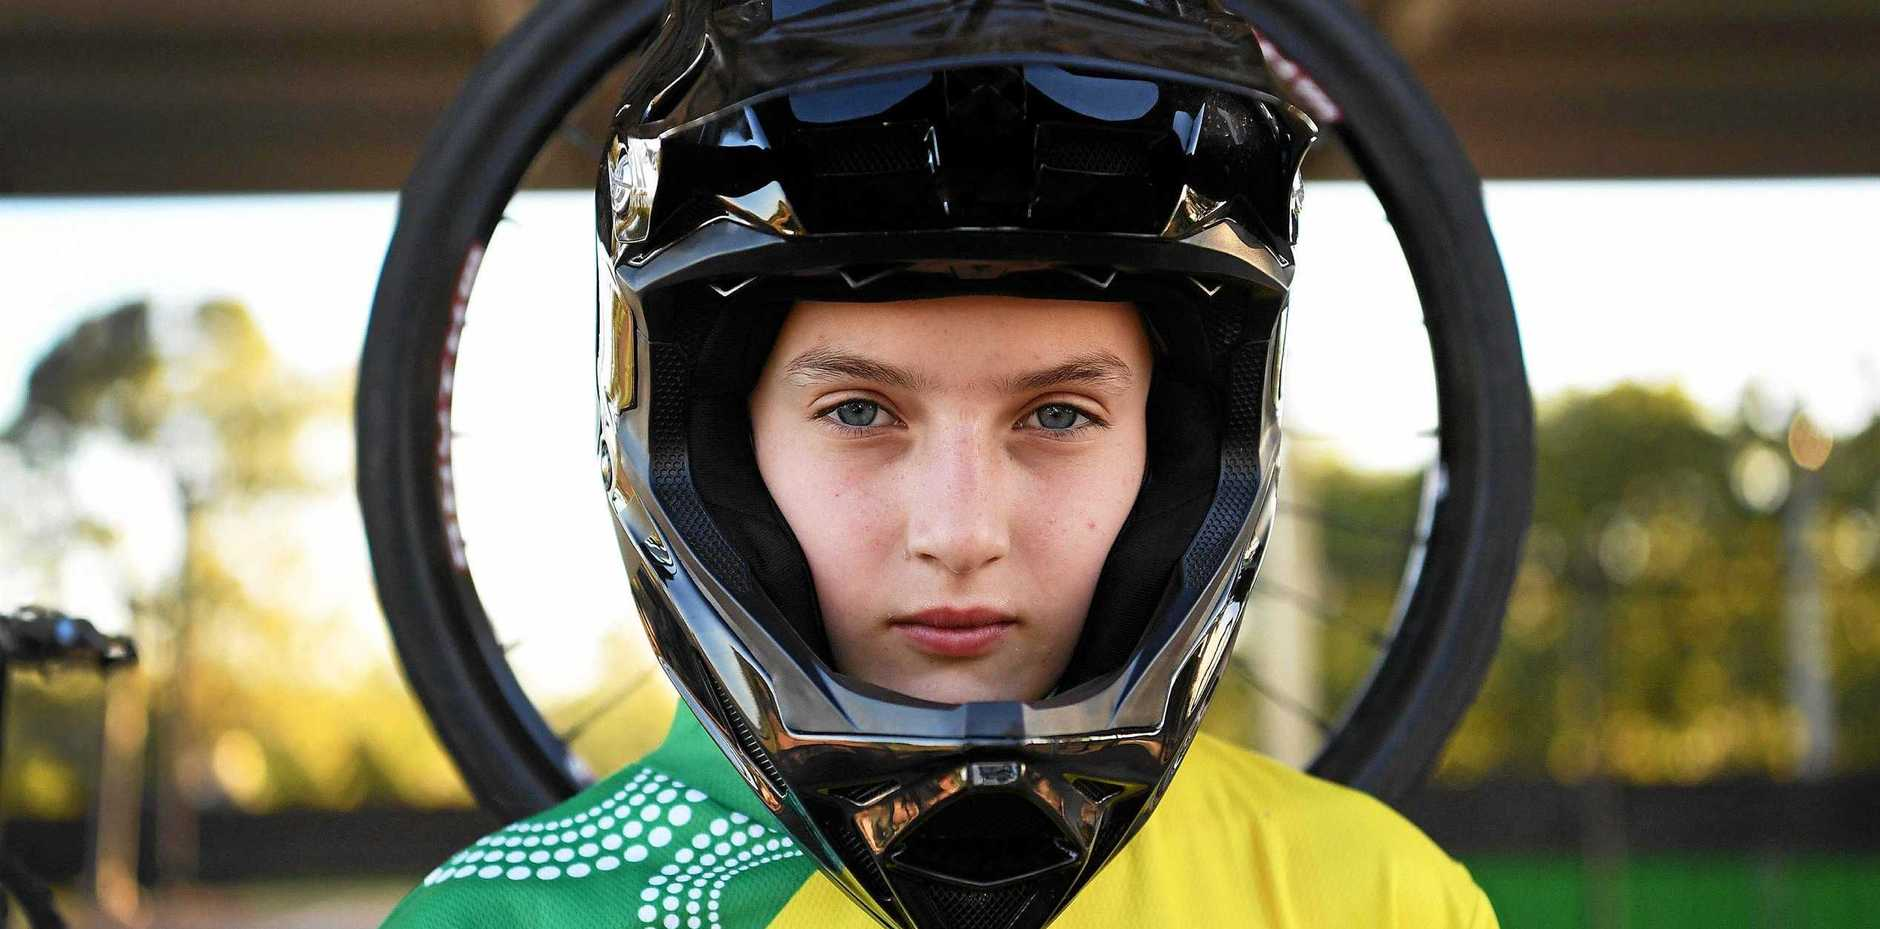 SUPERSTAR: Maryborough's Teya Rufus will be vying for the number one spot at the upcoming World BMX Championships in Belgium.